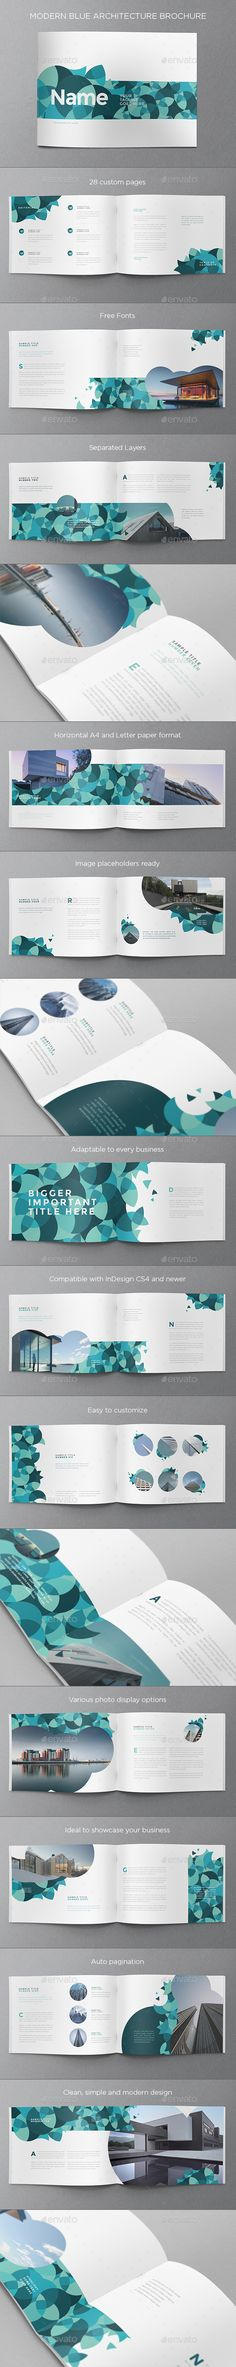 Modern Blue Architecture Brochure Template InDesign INDD. Download here: http://graphicriver.net/item/modern-blue-architecture-brochure/15380145?ref=ksioks